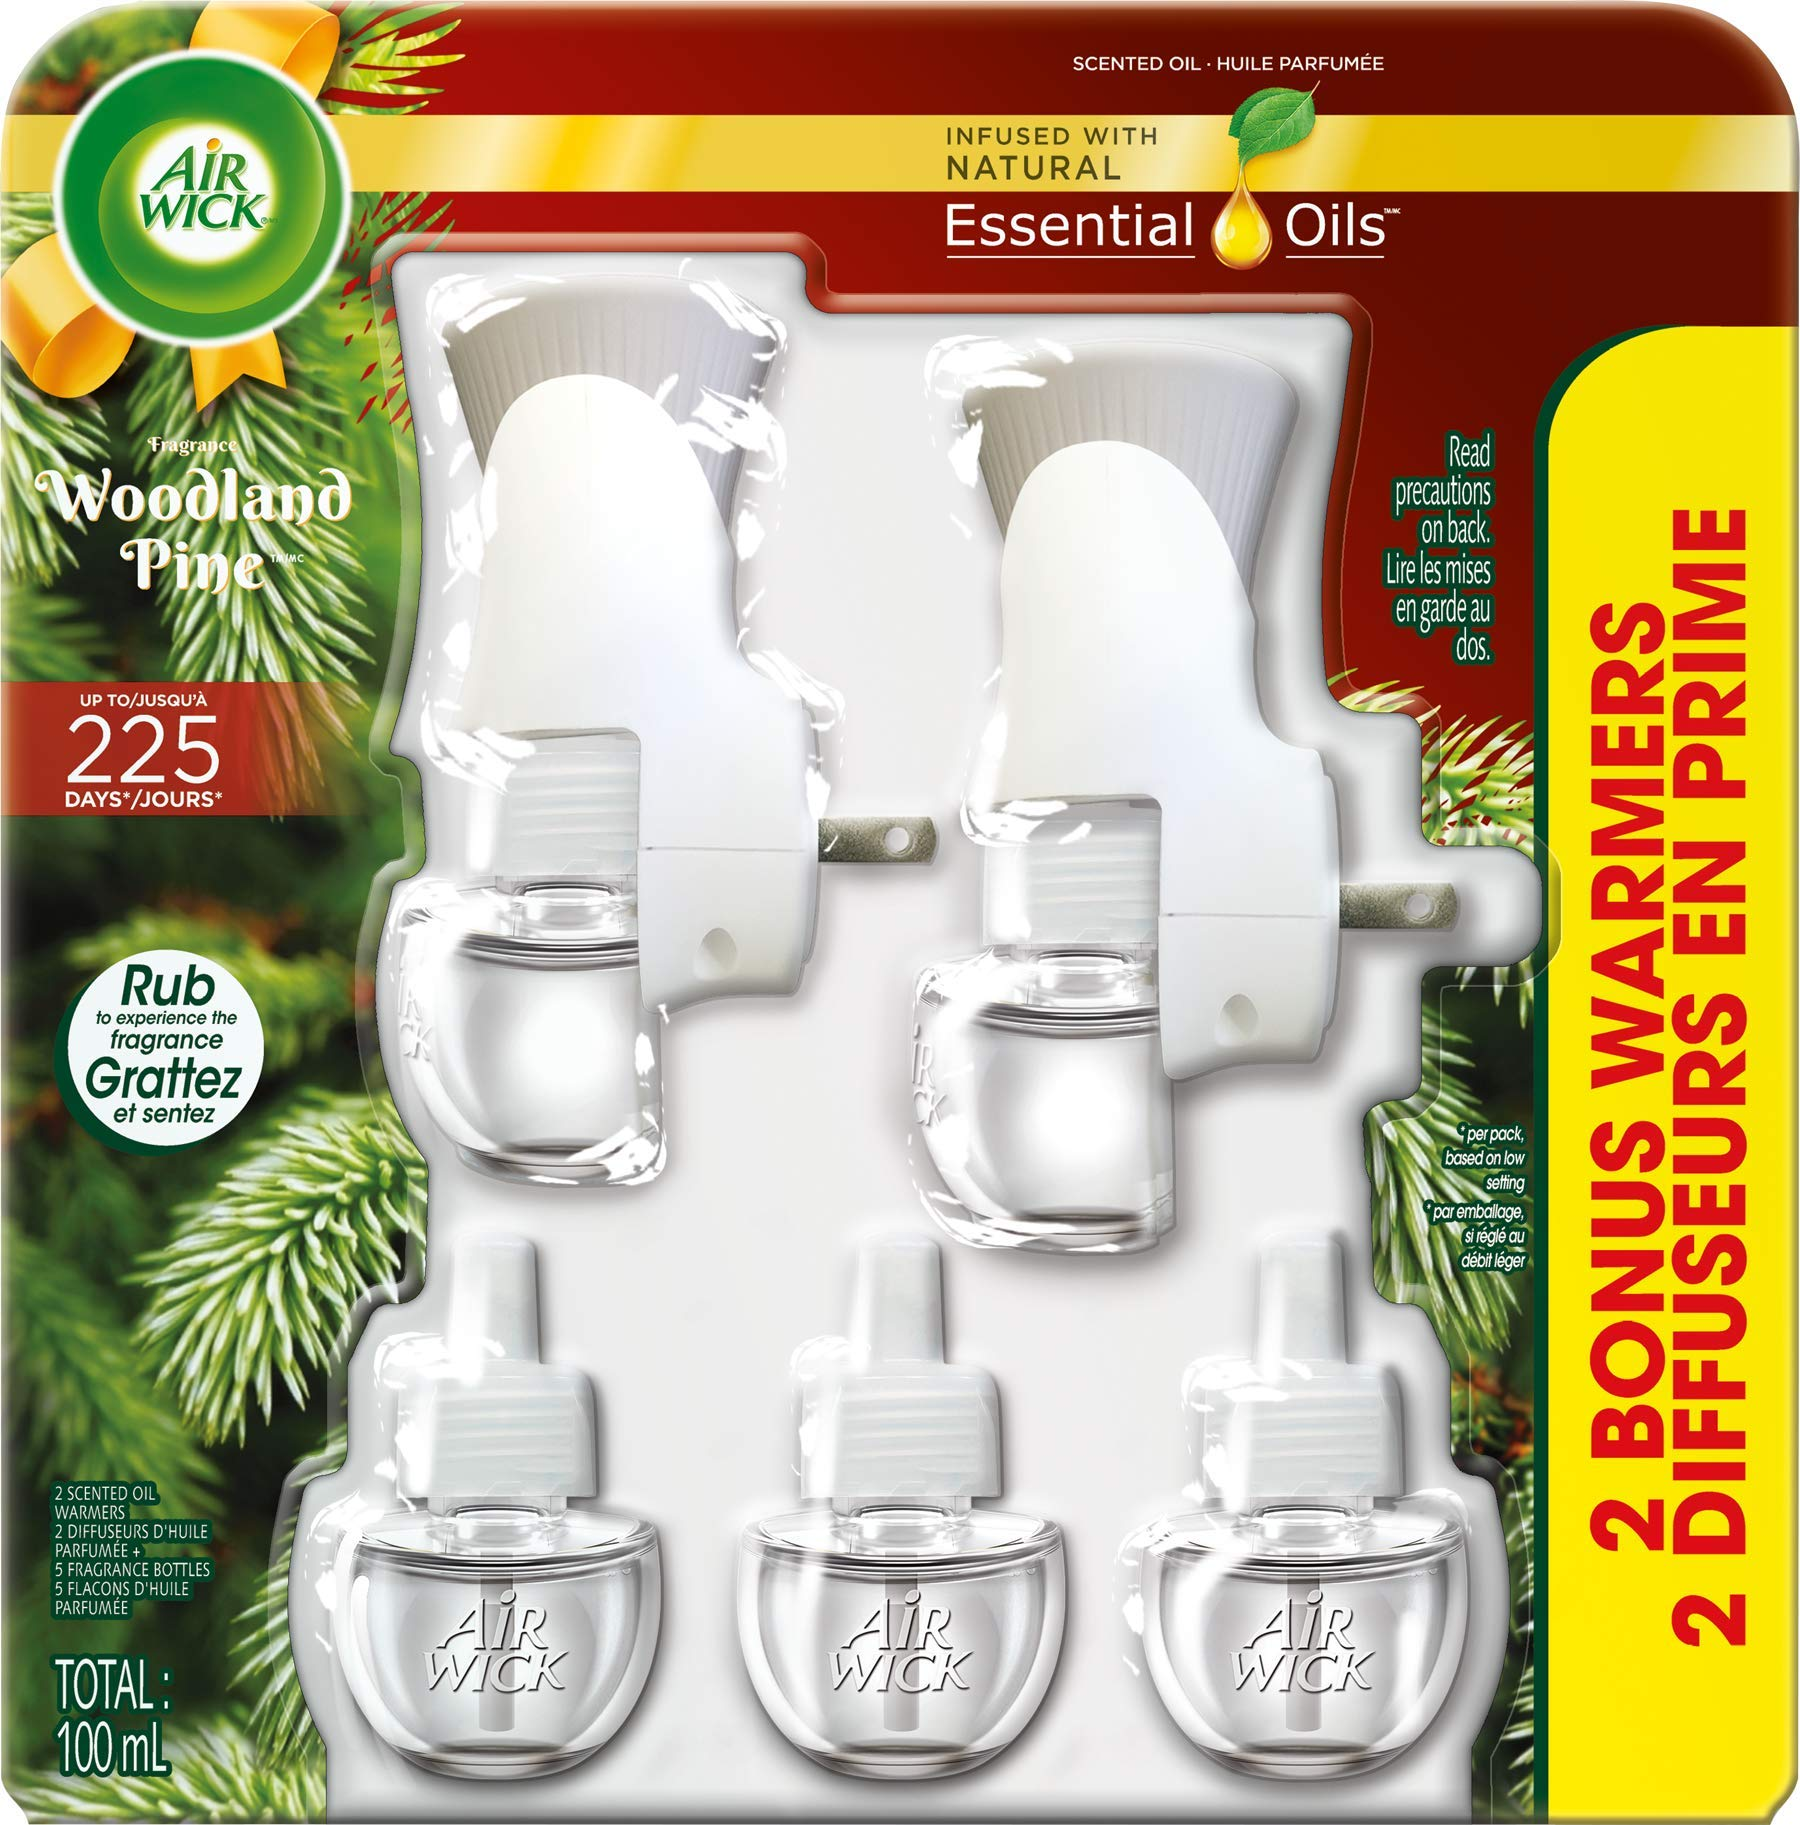 Amazon.com: Air Wick Holiday Scented Oil Kit (2 Warmers + 5 Refills), Woodland Pine, Air Freshener: Health & Personal Care